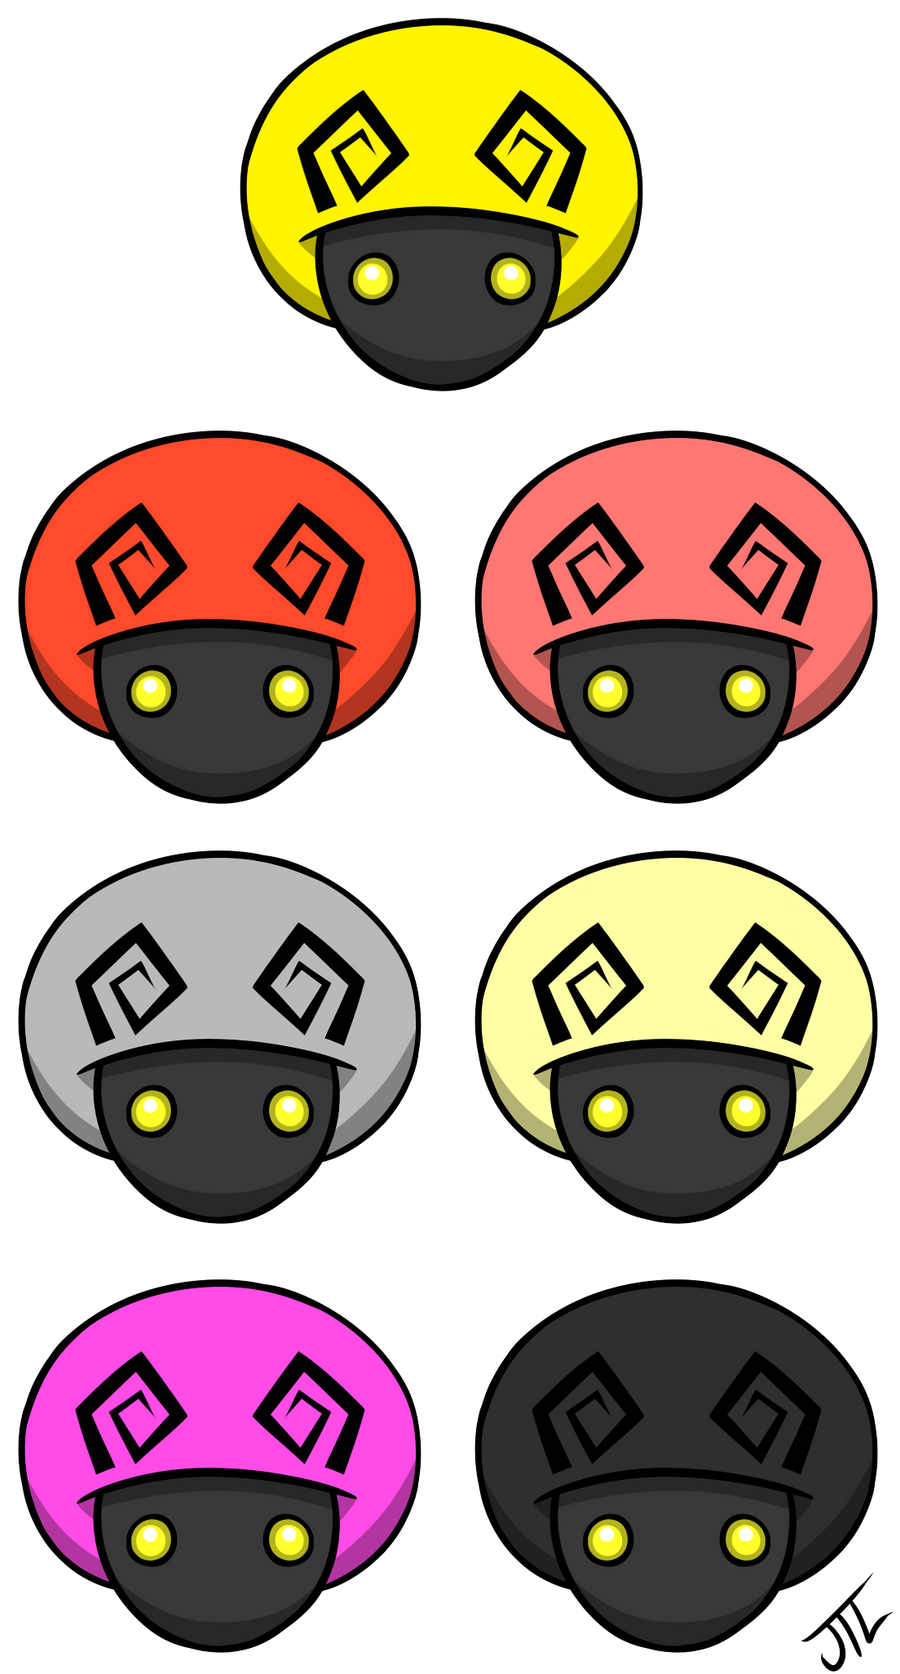 Kingdom Hearts Mushroom Symbols By Entermeun On Deviantart